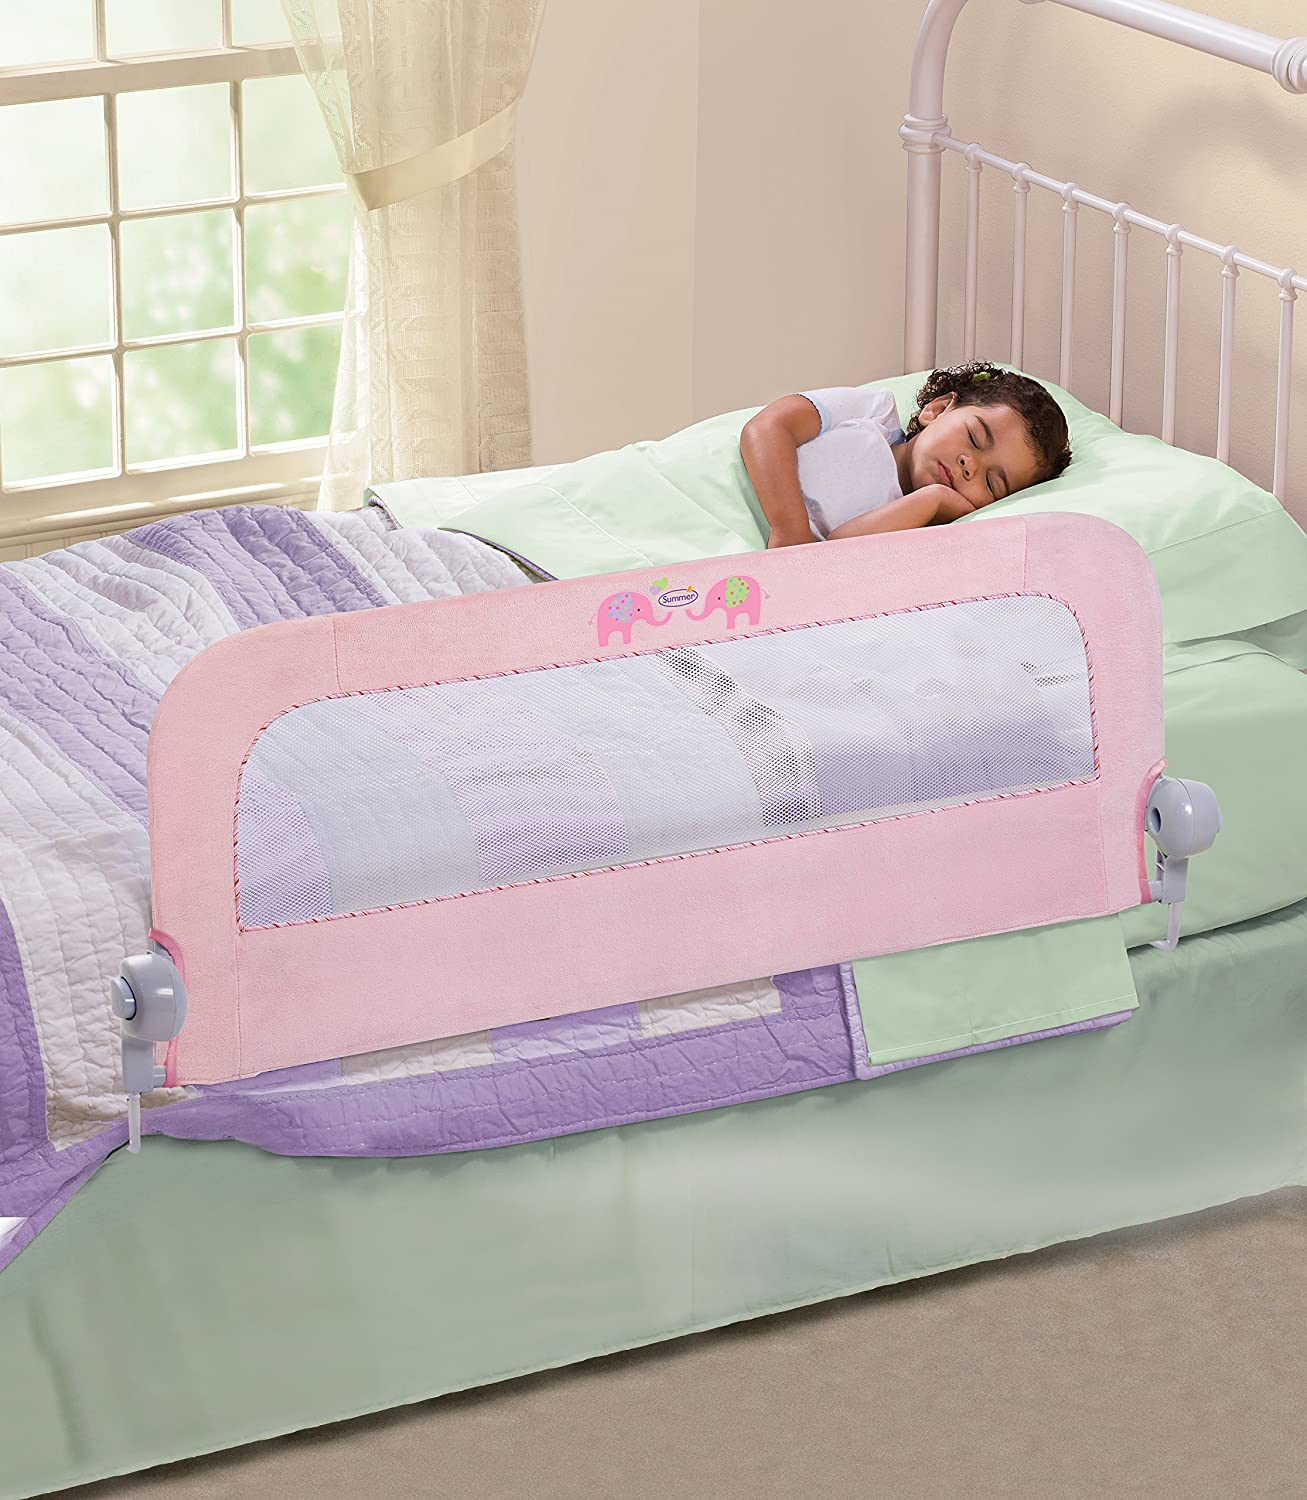 Amazon Summer Infant Sure And Secure Deluxe Bedrail Pink N Plush Childrens Bed Safety Rails Baby